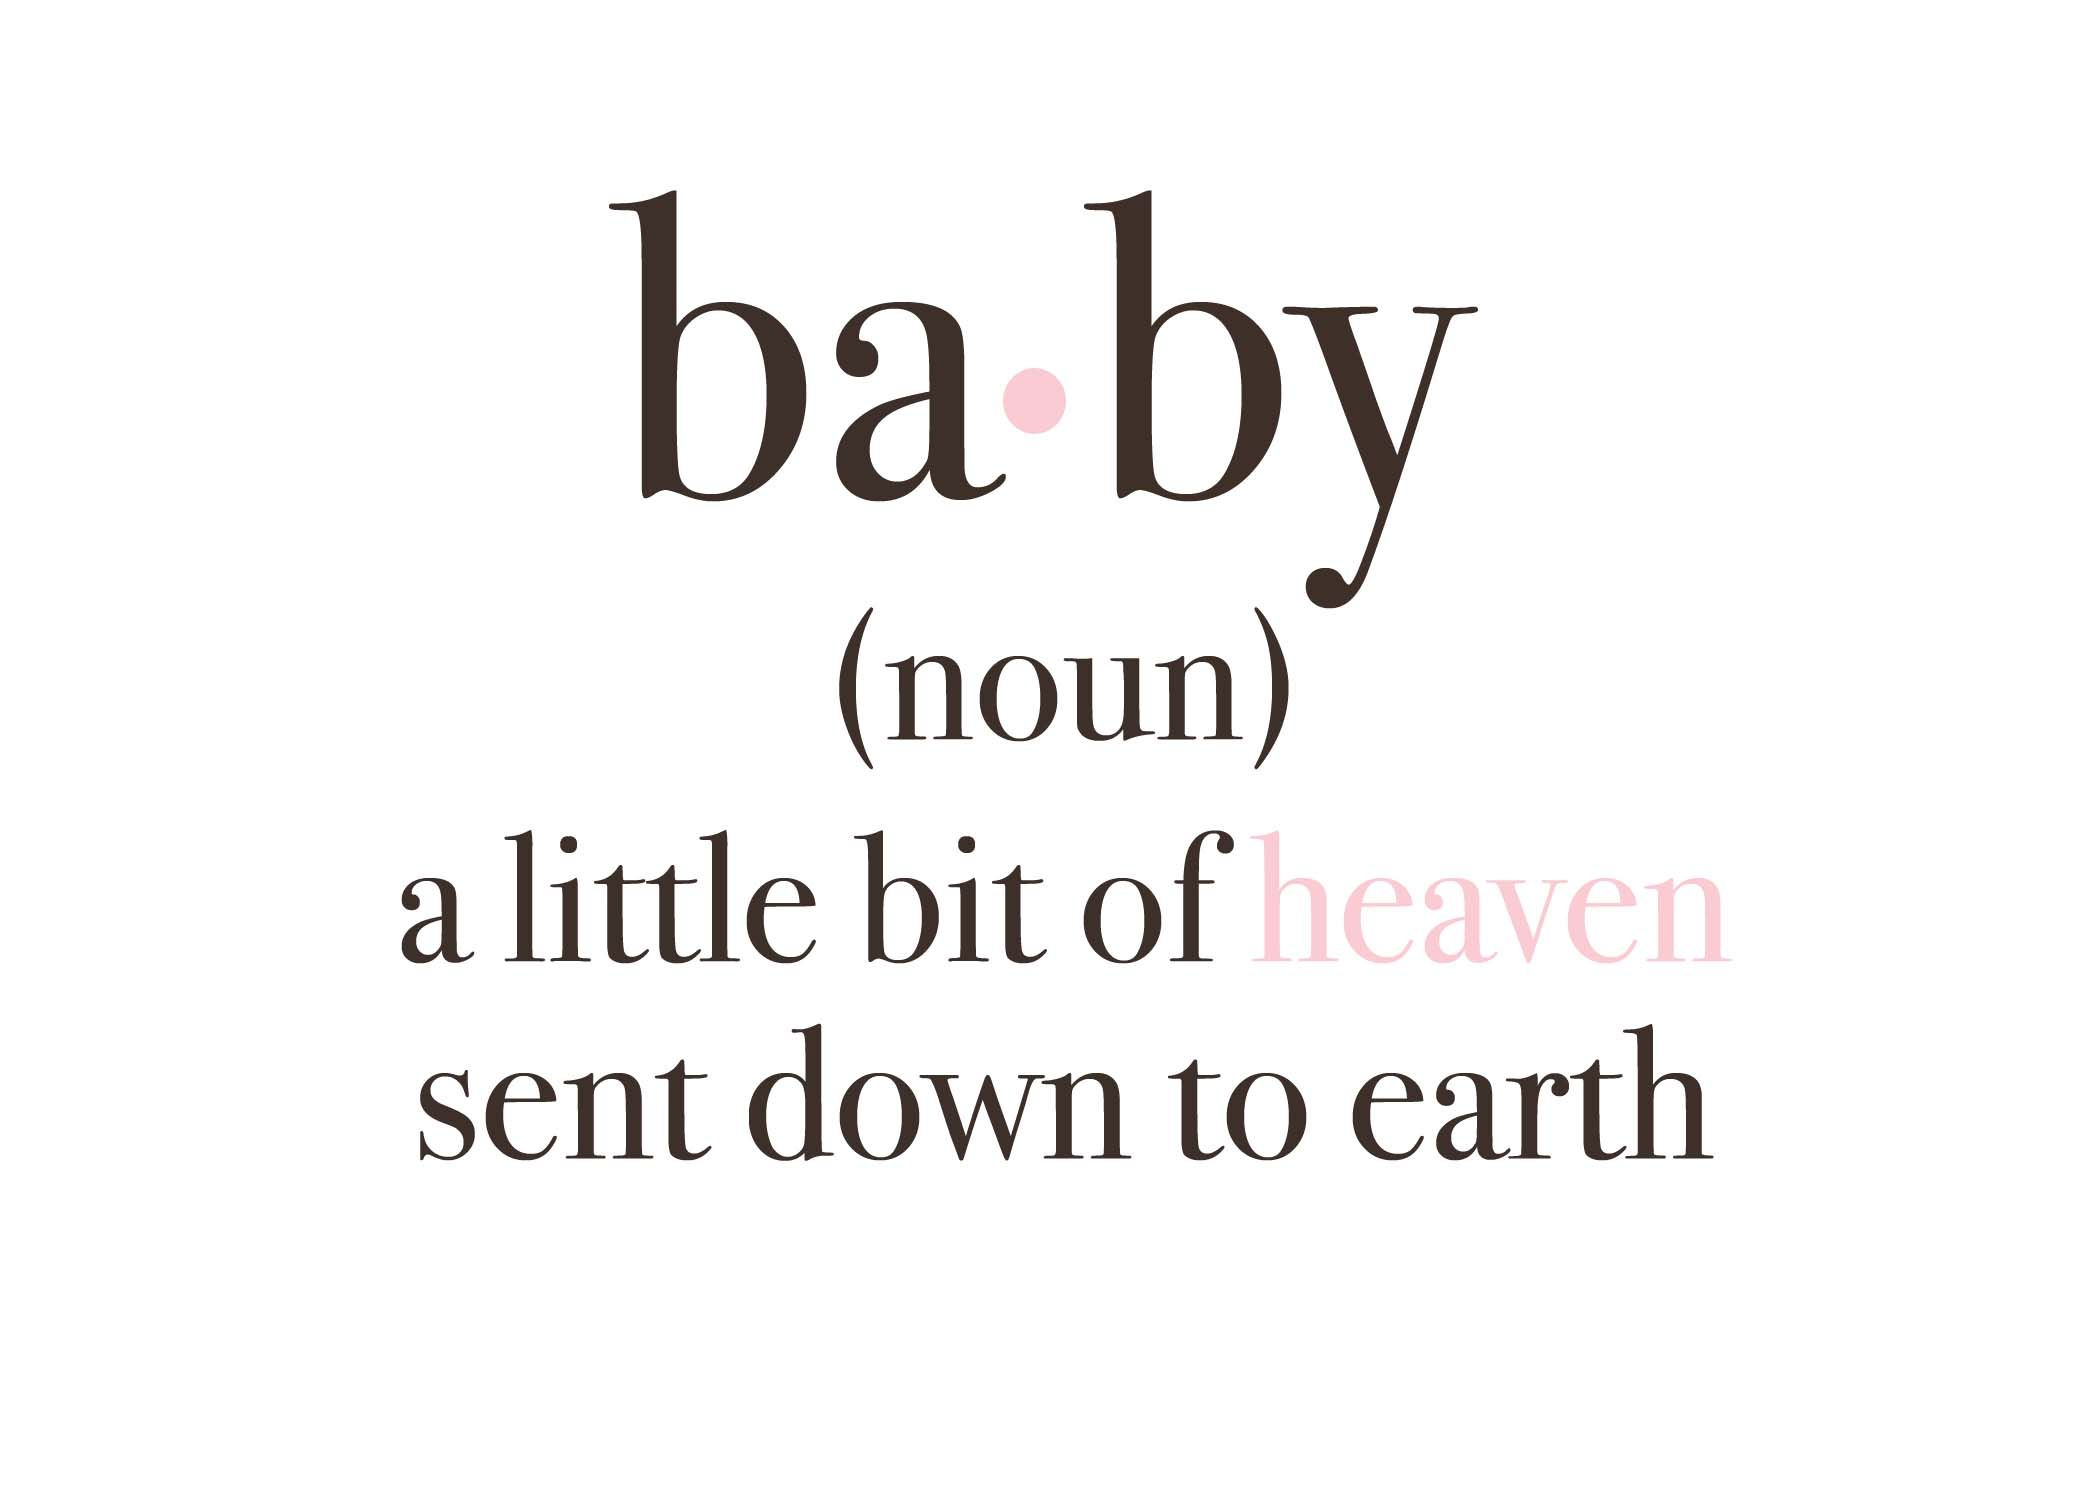 Little Boy Quotes Entrancing Baby Noun  Httpbestwallpaperhdbabynounhtml  Baby